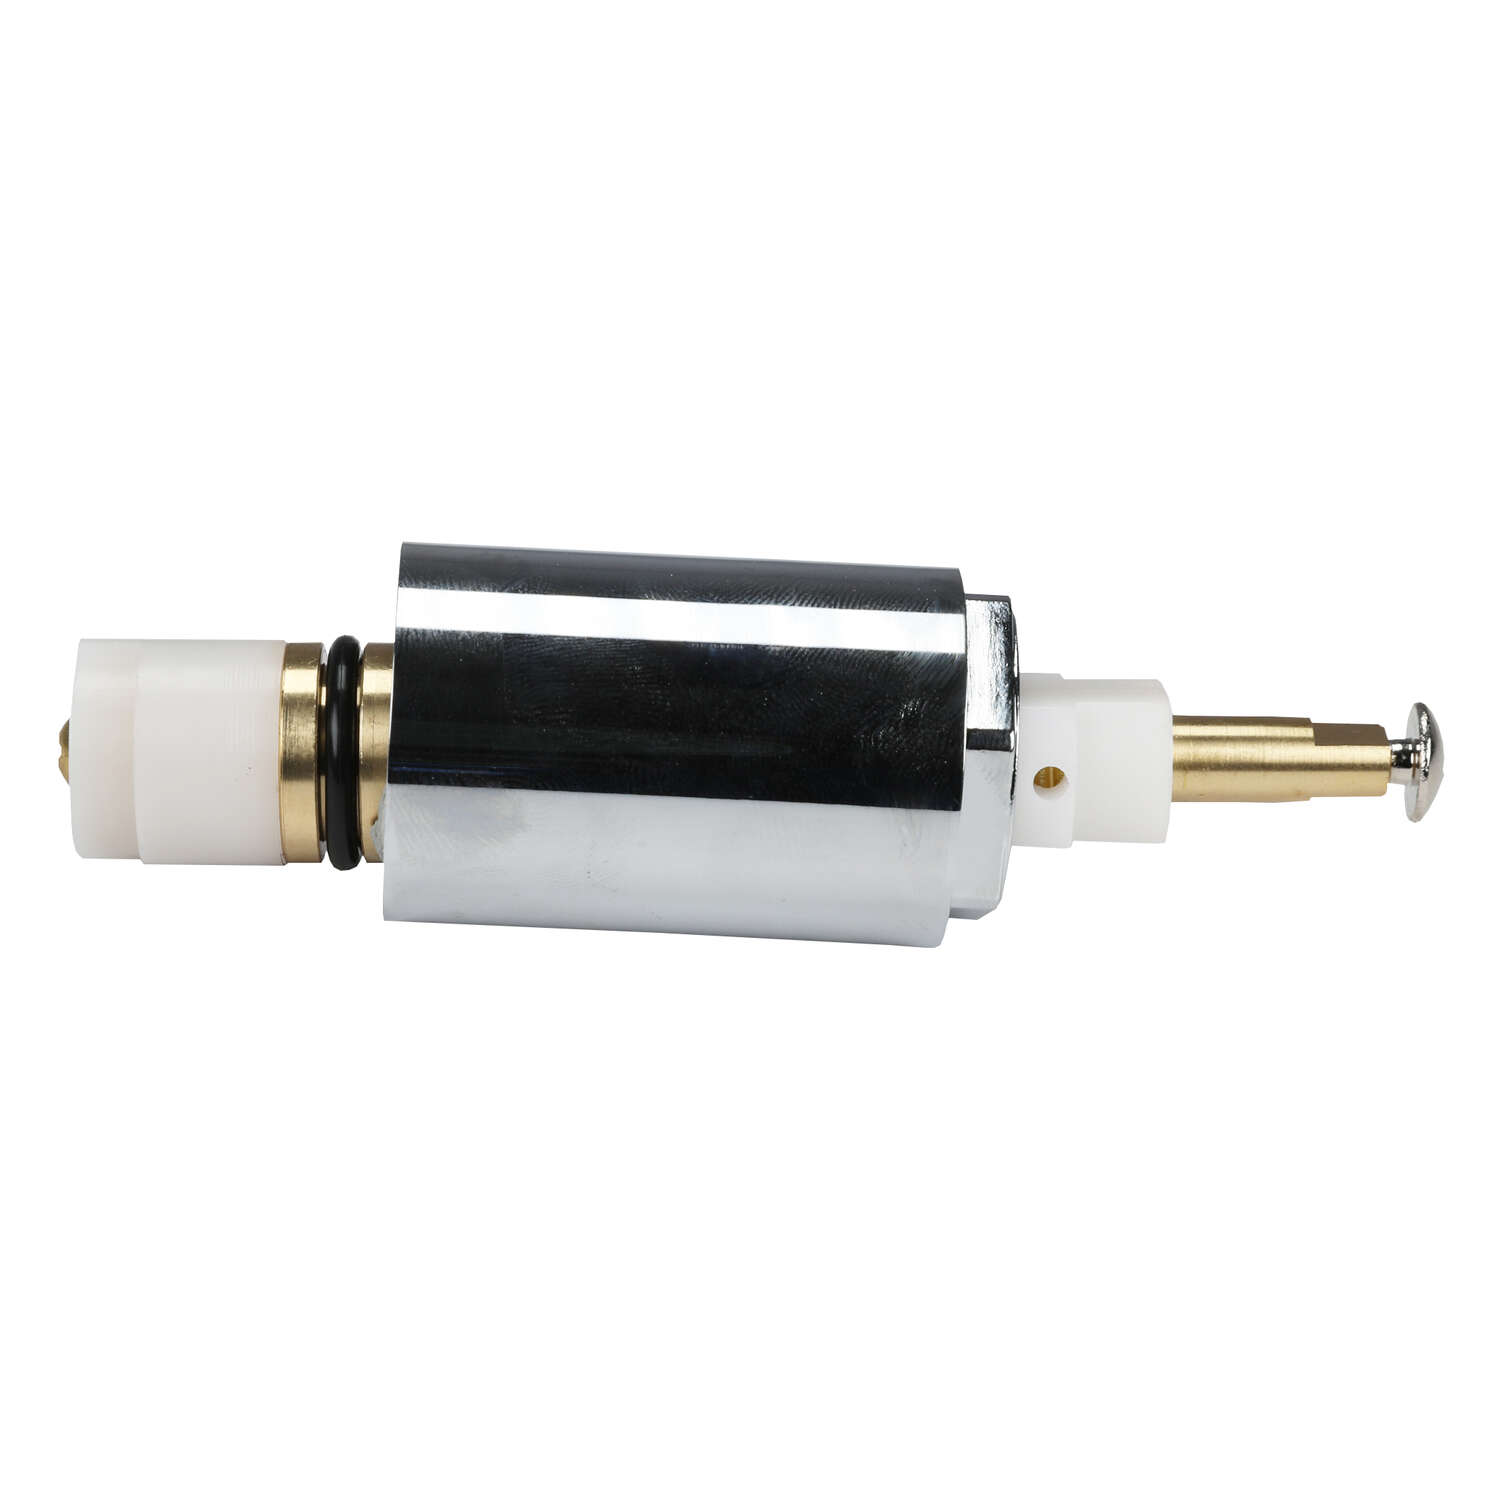 Ace  Tub and Shower  MX-1  Faucet Cartridge  For Mixet